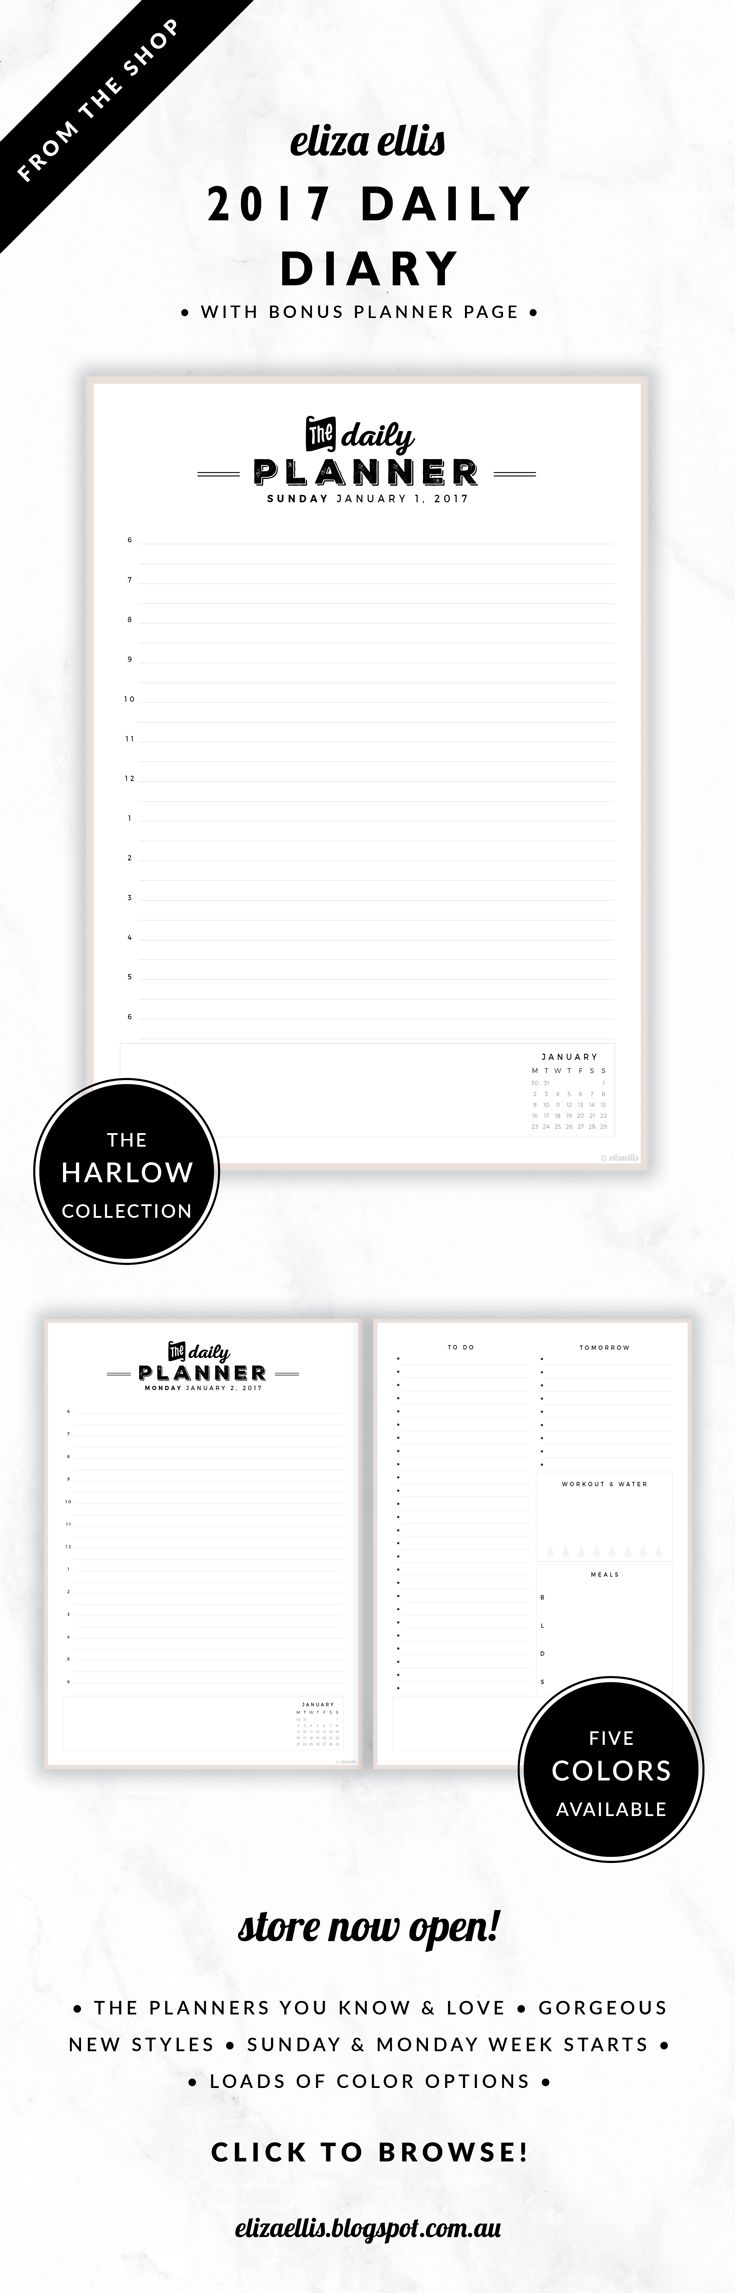 2017 Printable Daily Diary with Bonus Planner Page // The Harlow Collection by Eliza Ellis. Gorgeous vintage typography design. Includes quick reference calendar and plenty of room for notes. Planner page includes generous to do list, meal planner, tomorrow list and exercise and water planner. Available in 5 colors – cigar, perfume, moonshine, roadster and sterling. Monday and Sunday week starts included.